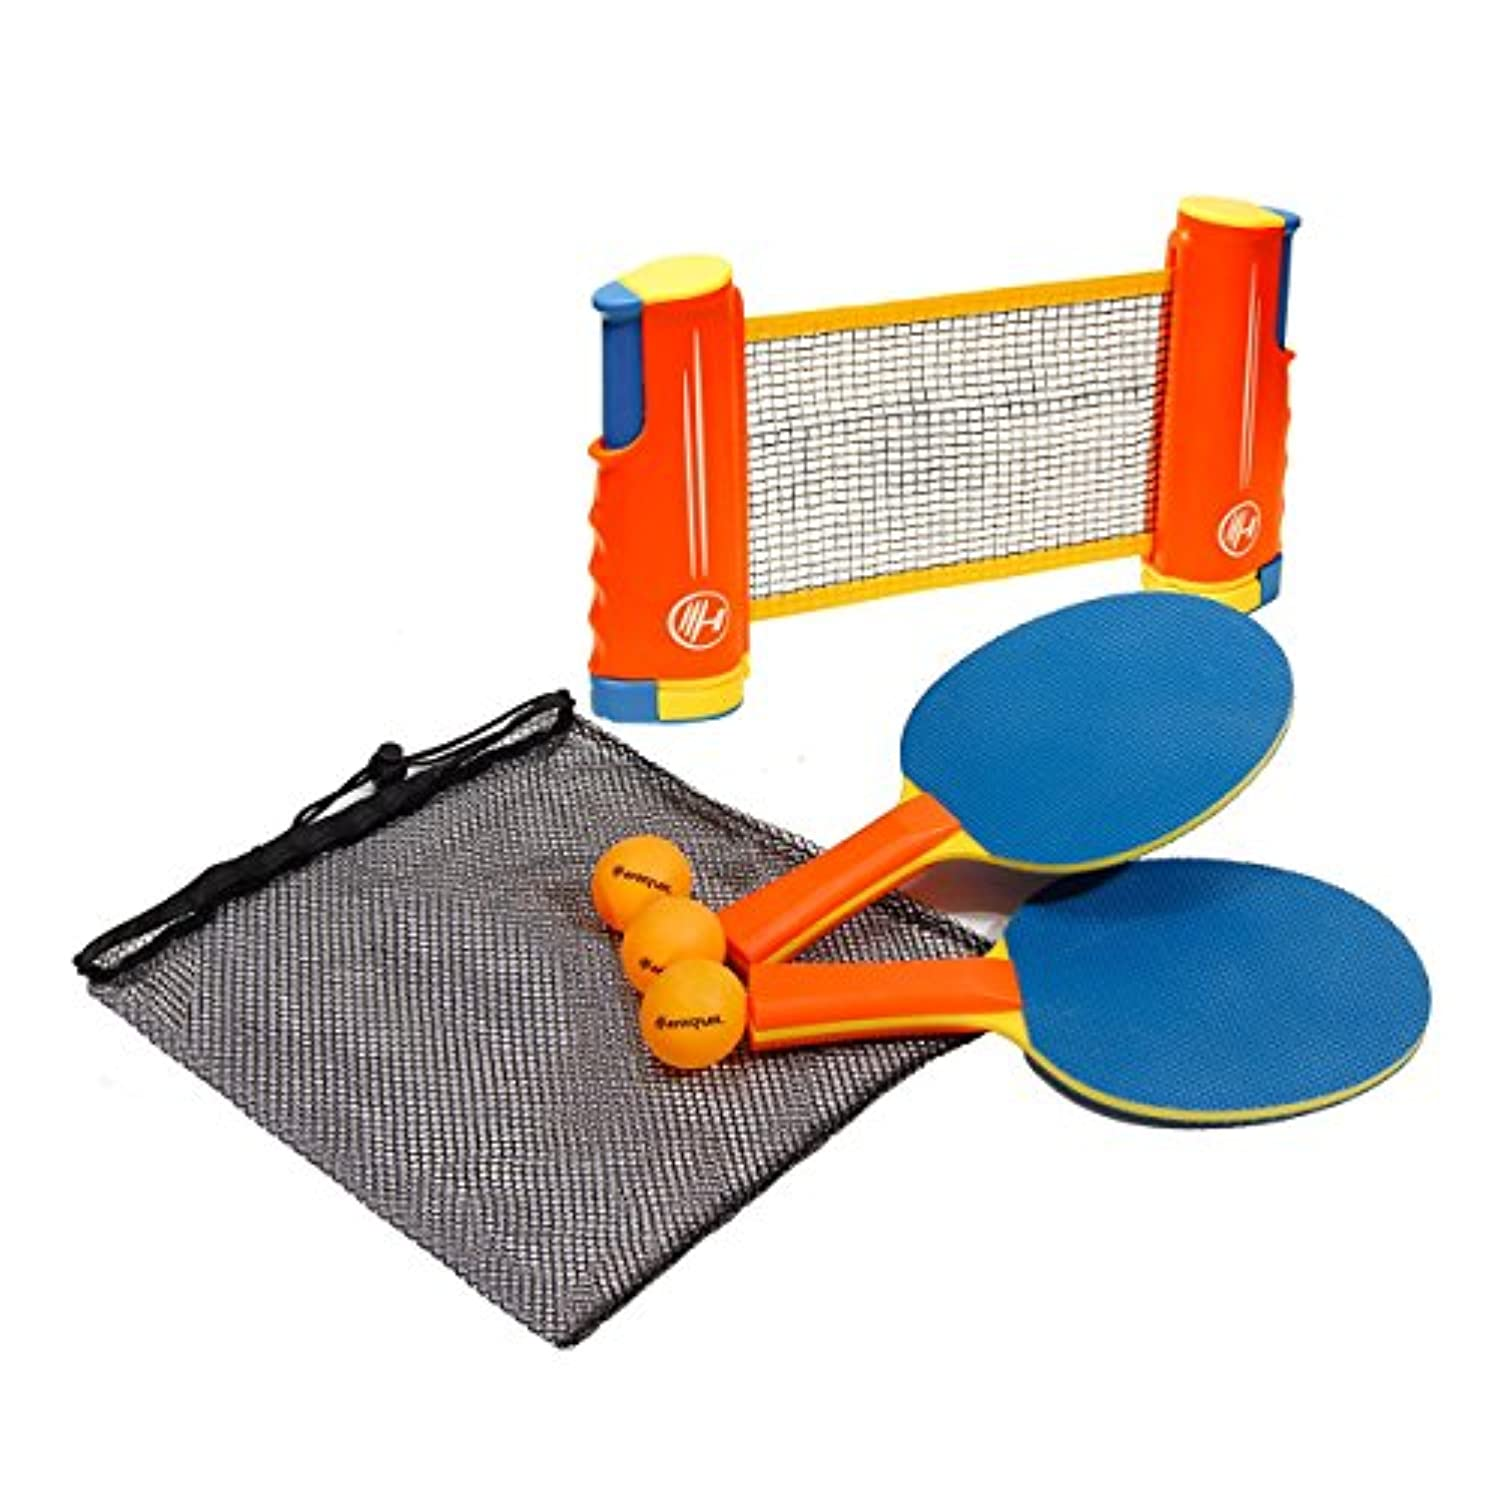 [ハービル]Harvil Portable and Retractable Table Tennis Net Set ToGo with FREE Balls, Rackets, and Mesh Bag RTTN-1 [並行輸入品]